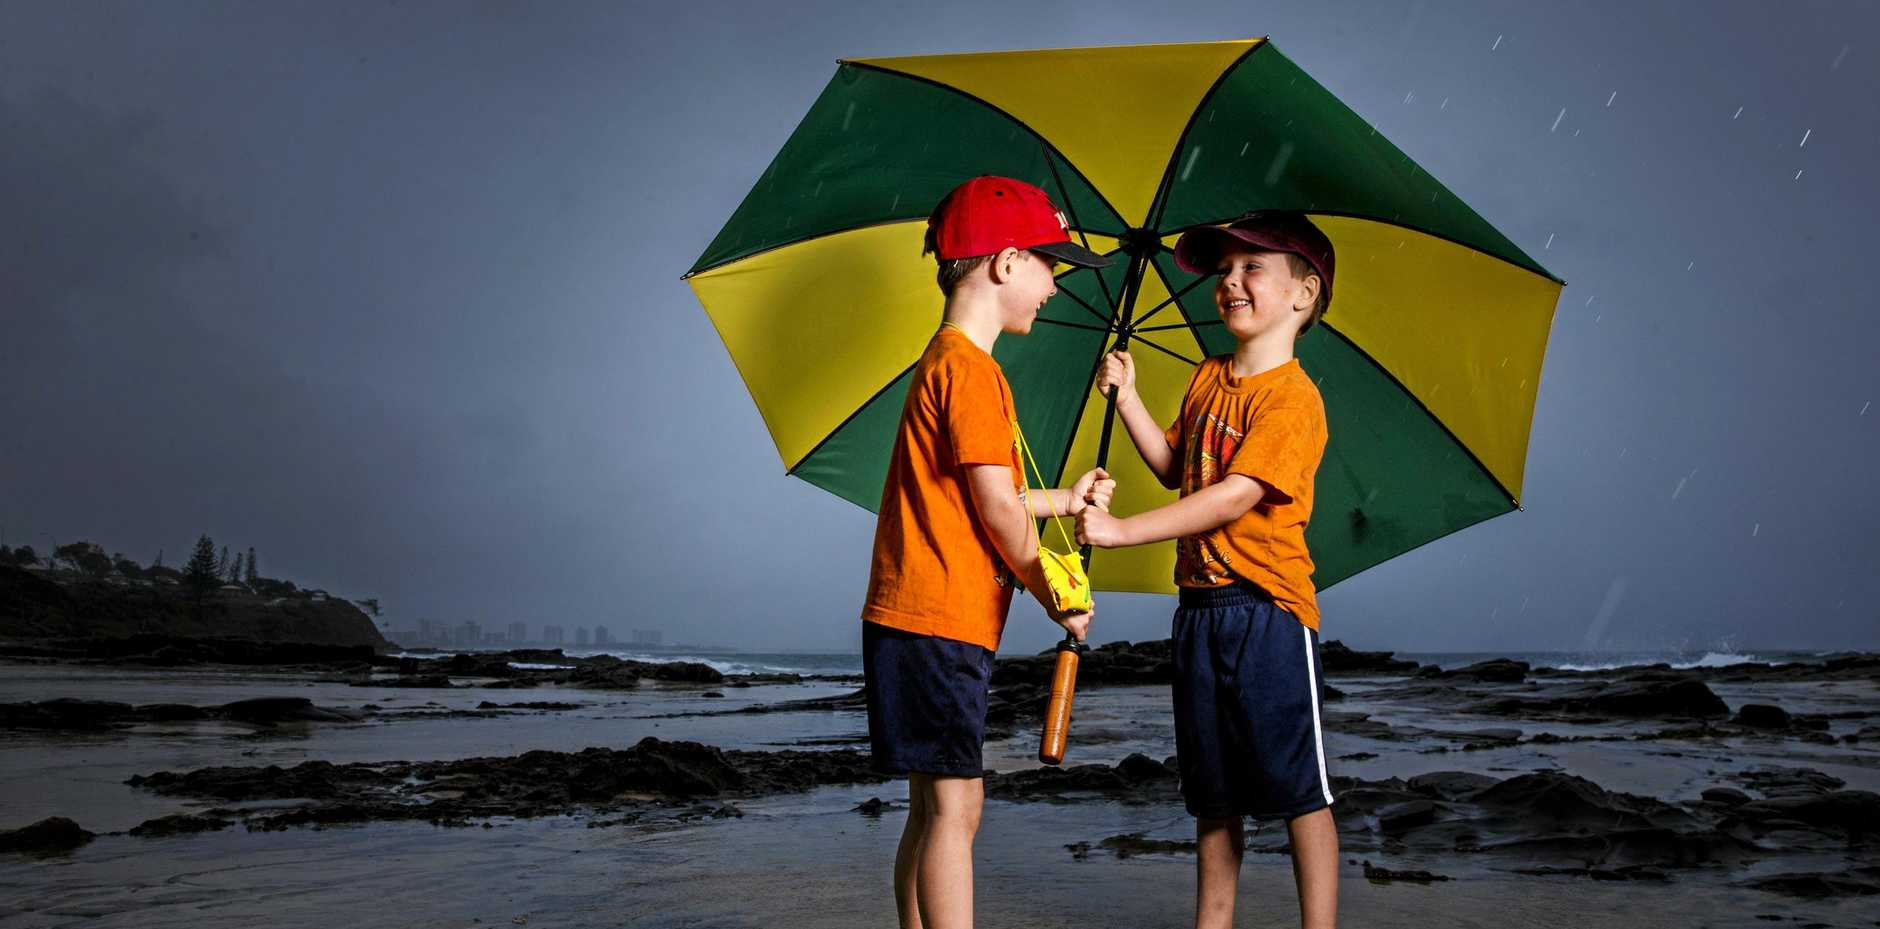 WET WEATHER: FIVE- year old twins Jacob and Timothy Booth from Canada didn't mind the rain at Mooloolaba as it was minus 30 degrees when they left home in Alberta, Canada for their Australian holiday as heavy falls were recorded across the Sunshine Coast.